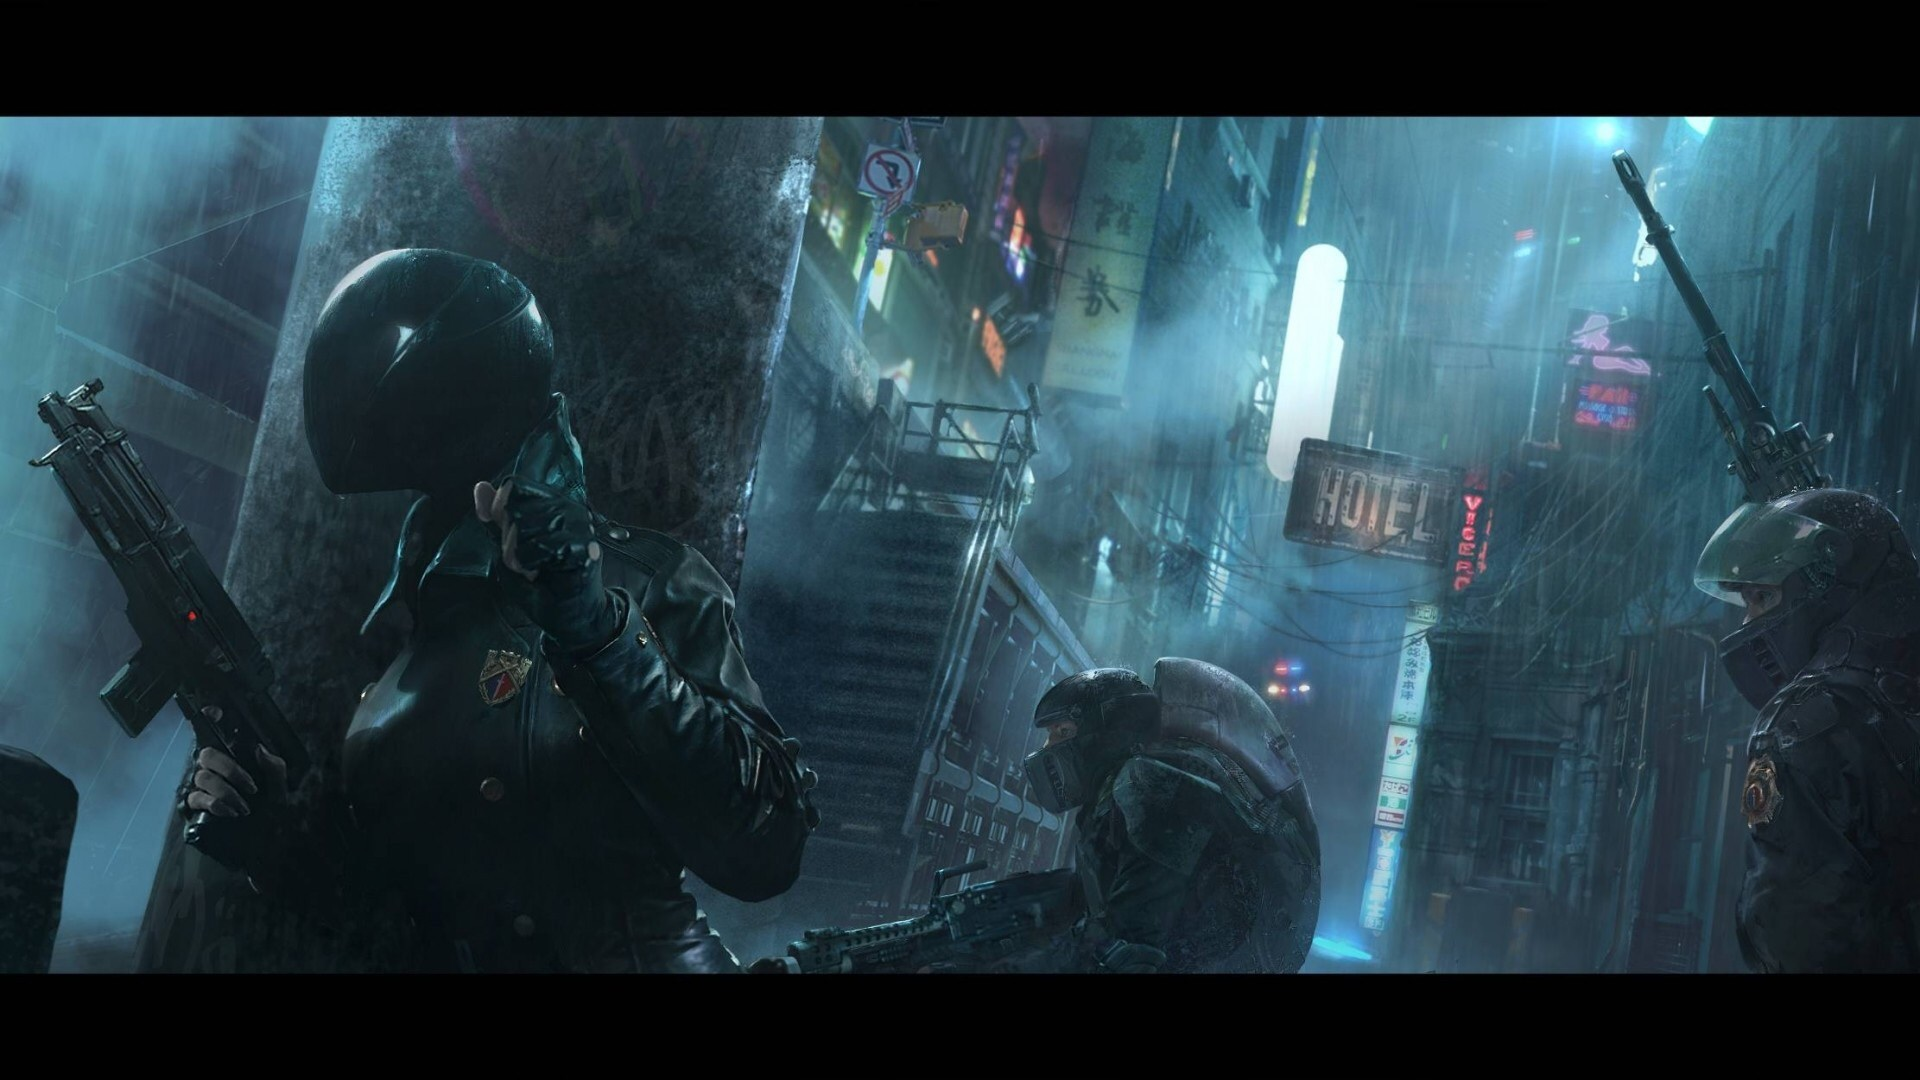 Police-action-in-a-cyberpunk-world-1920-1080-wallpaper-wpc9008598